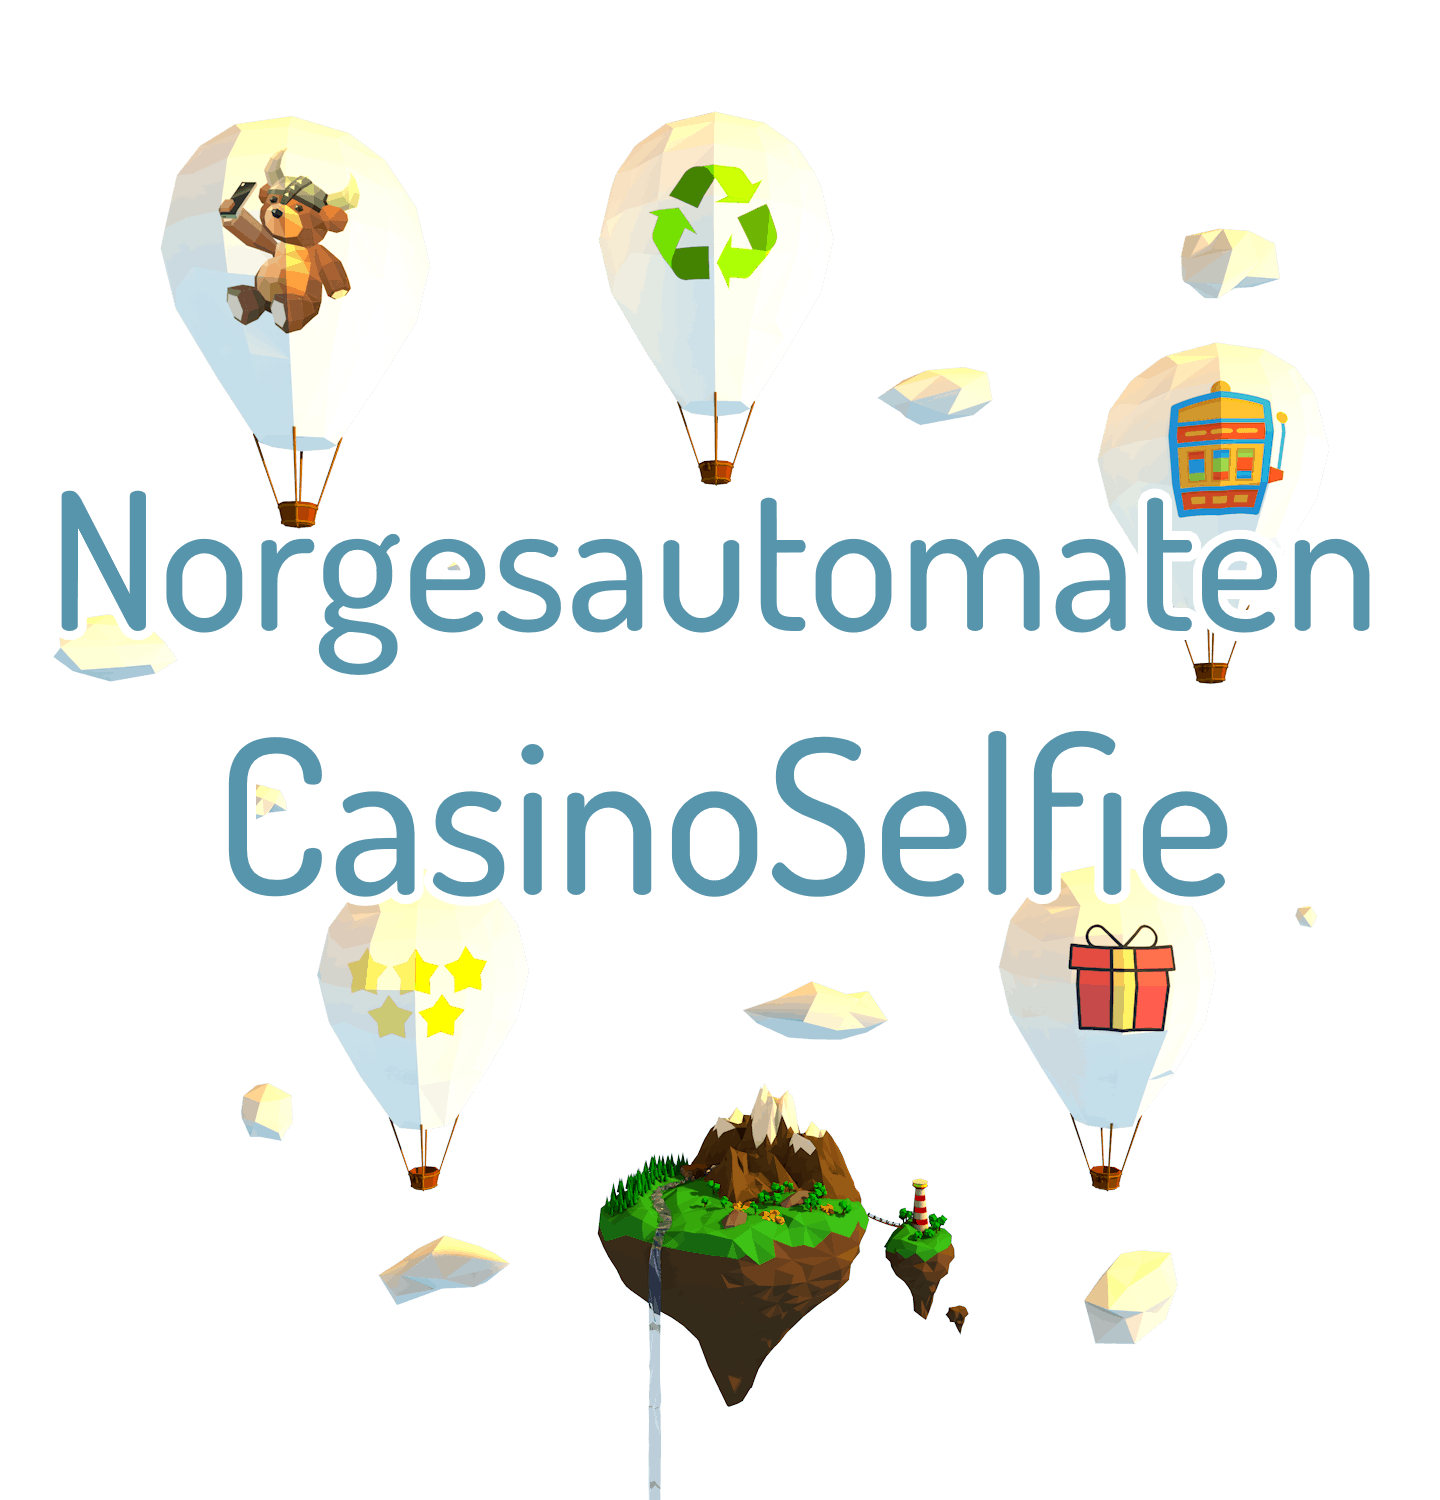 norgesautomaten omtale